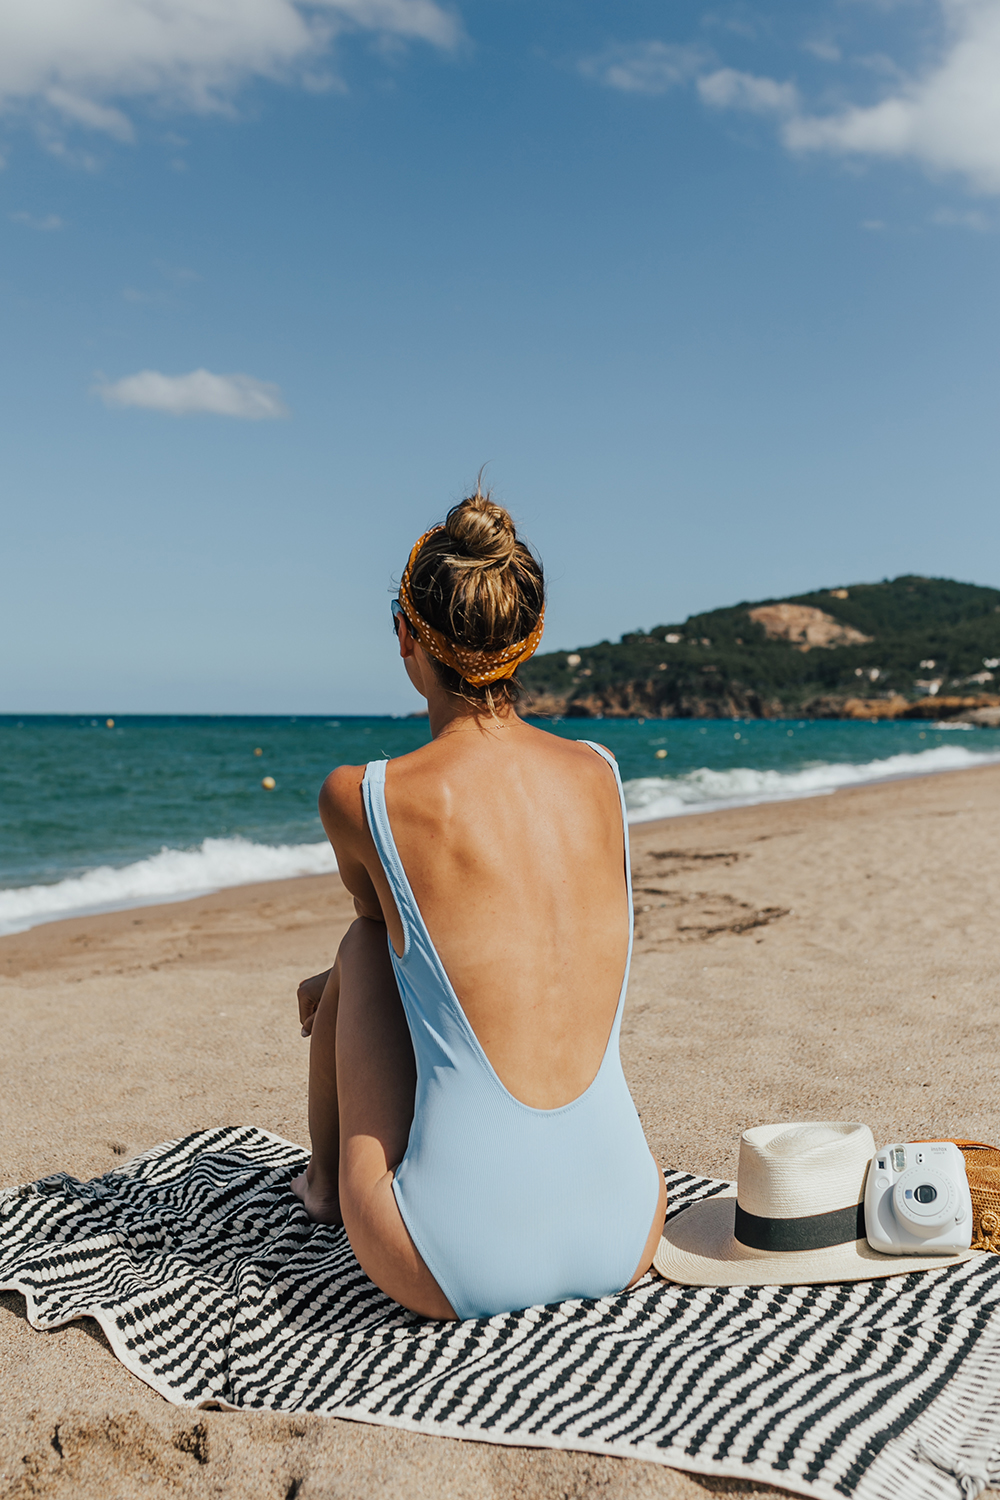 livvyland-blog-olivia-watson-fashion-travel-blogger-shop-spring-solid-and-striped-sophia-one-piece-swimsuit-periwinkle-blue-costa-brava-pals-beach-barecelona-spain-4